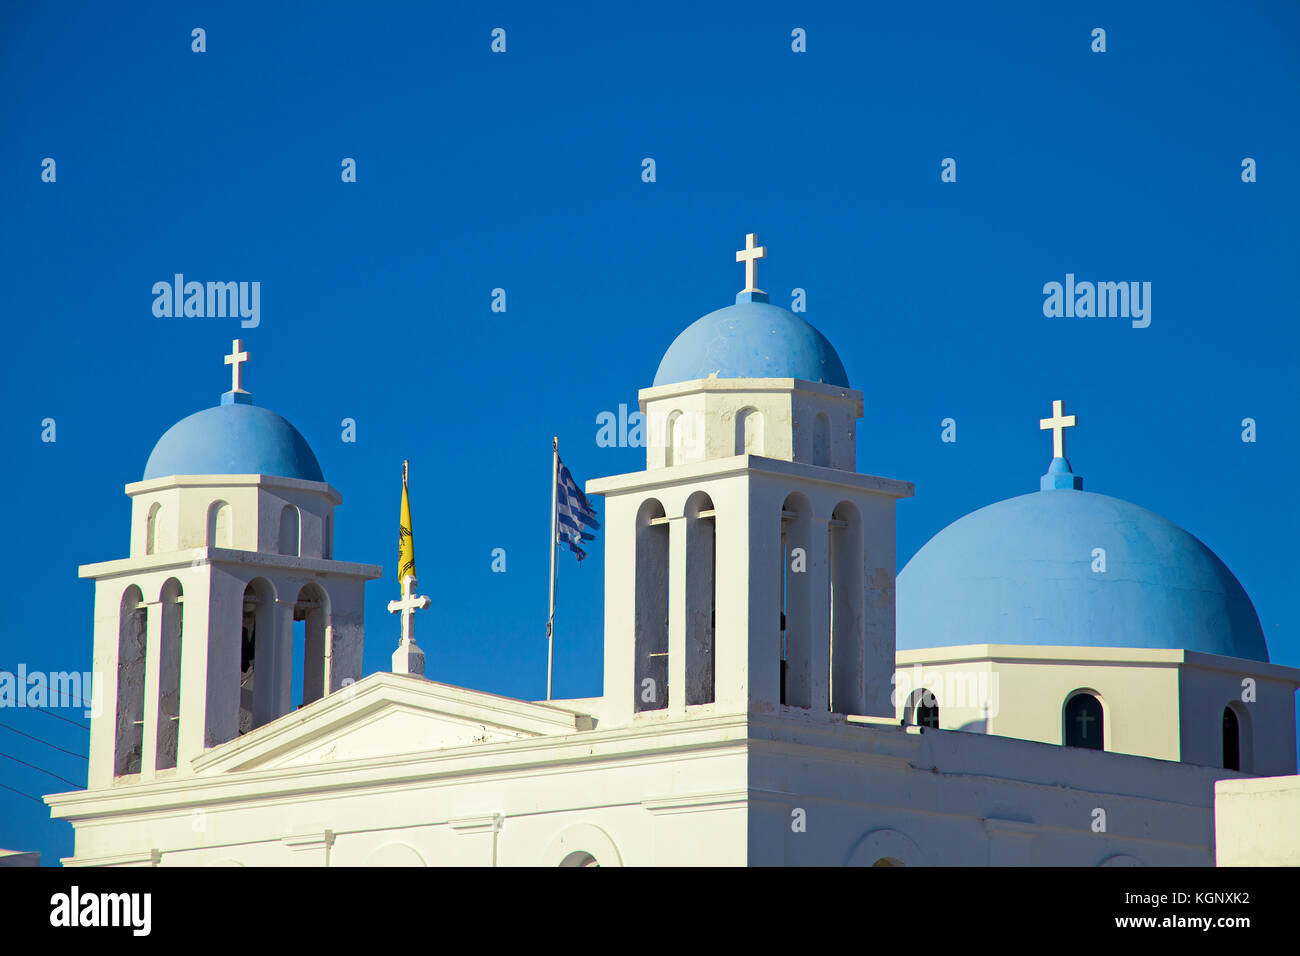 Orthodox church at evening light, Parikia, Paros, Cyclades, Greece, Mediterranean Sea, Europe Stock Photo